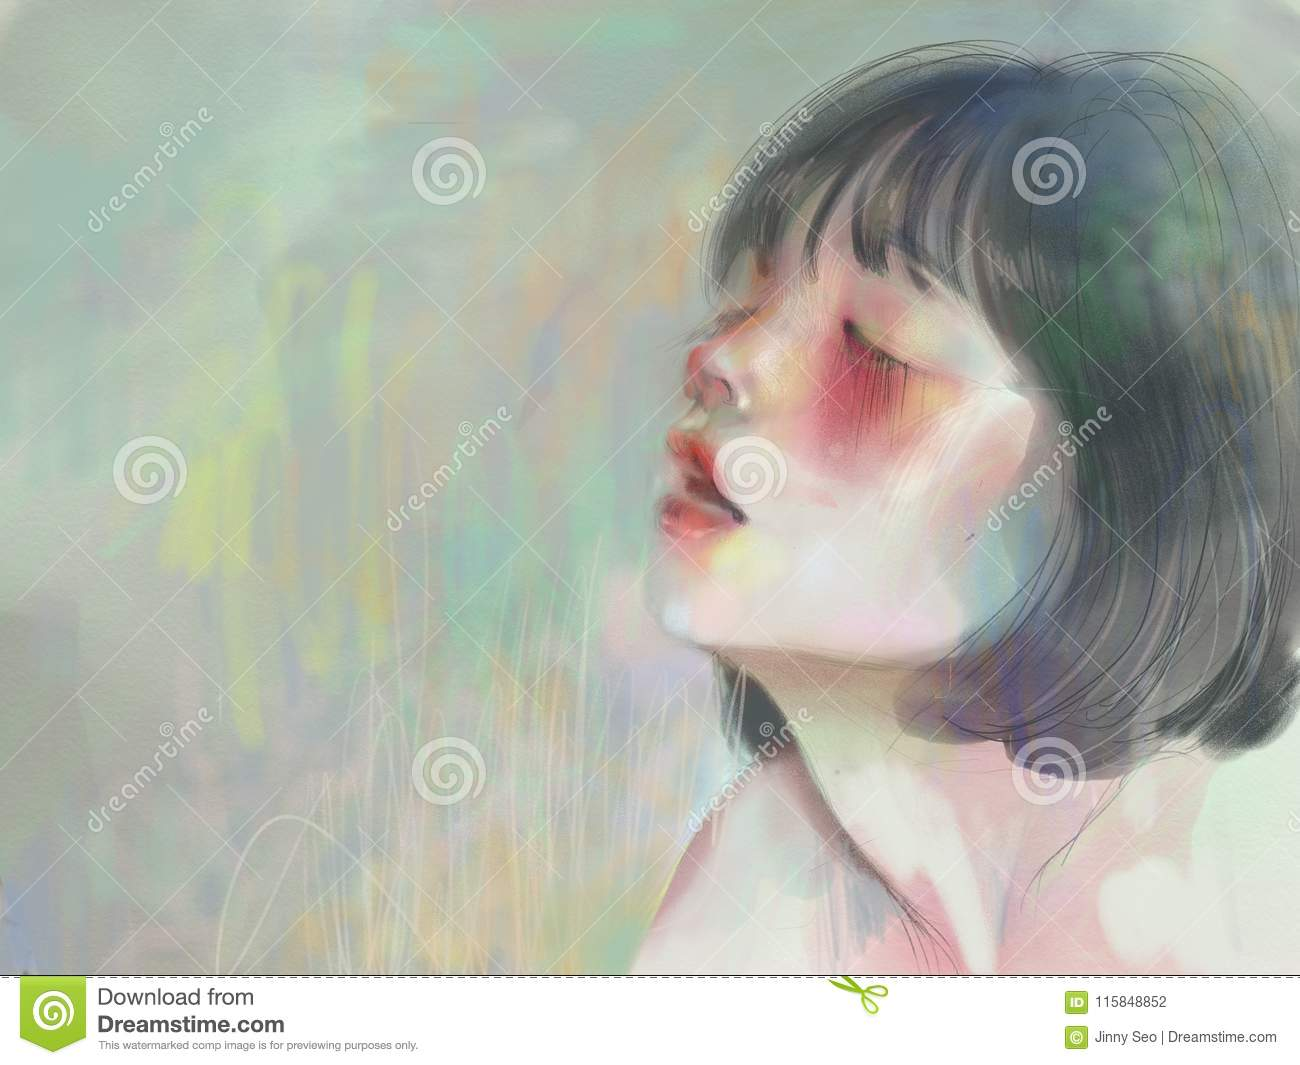 Inhaling, blushing girl with red cheeks in peaceful soft pastel colors